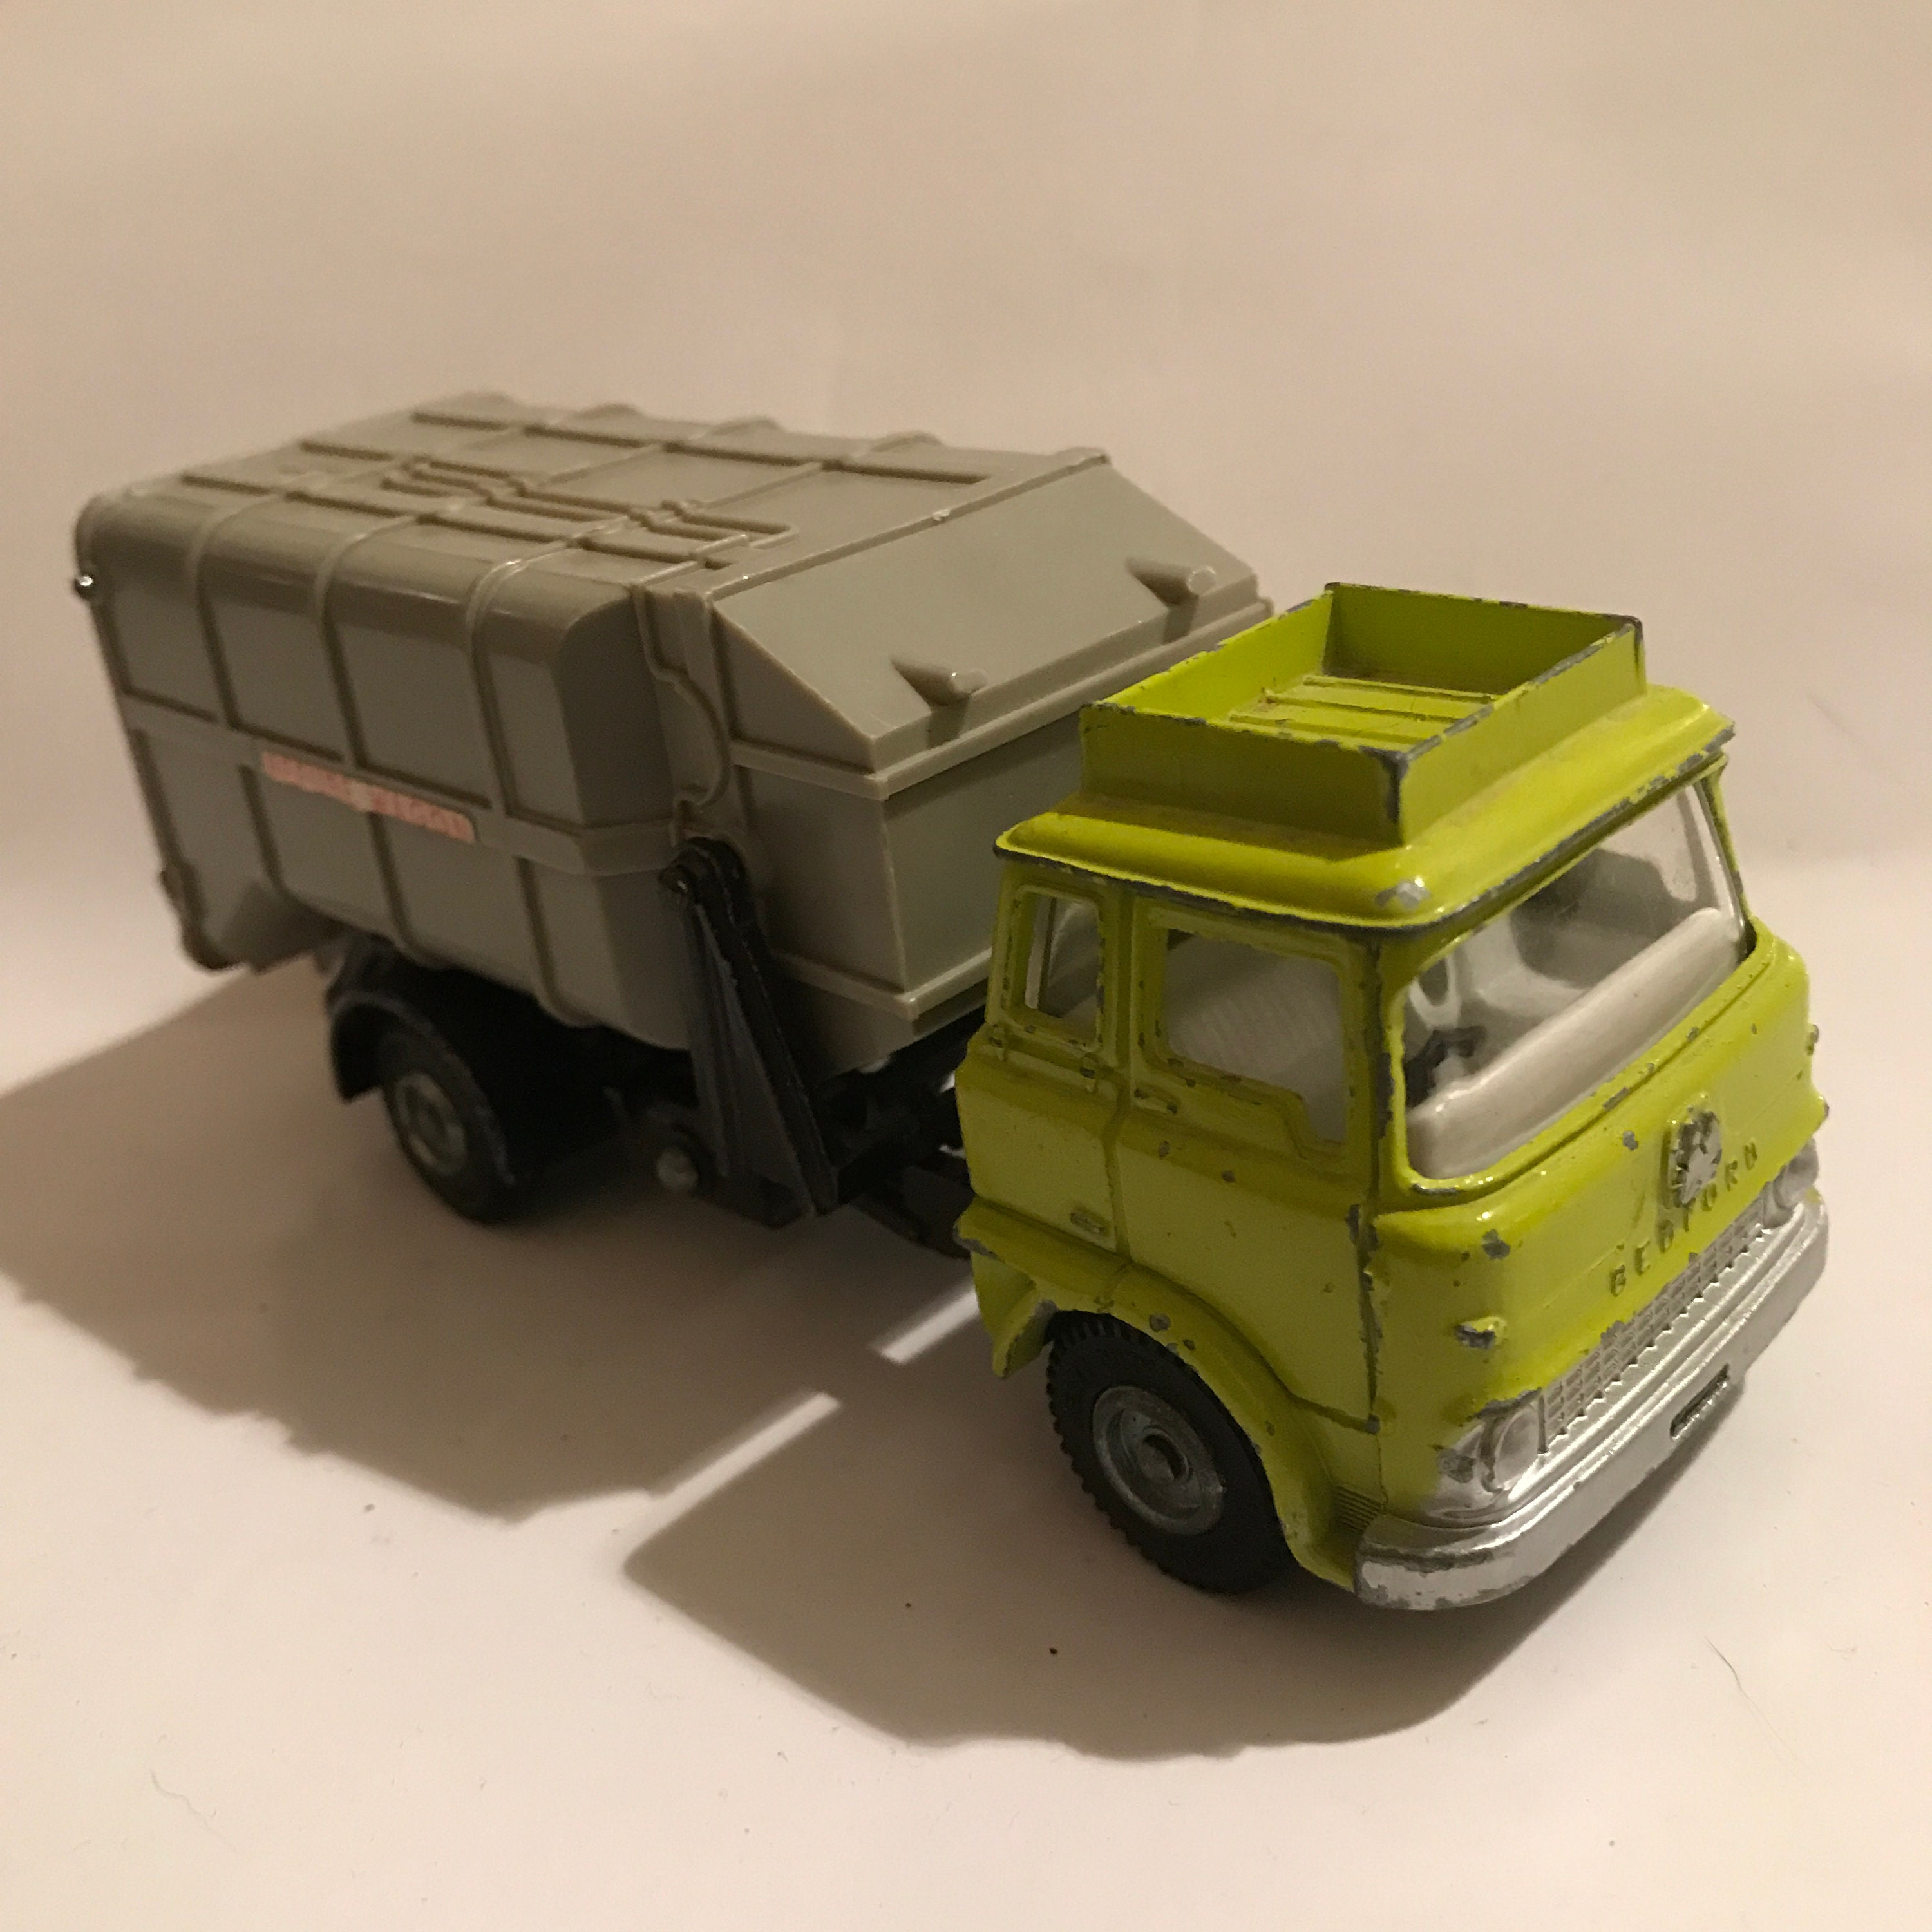 Vintage Dinky Meccano Toys Refuse Truck